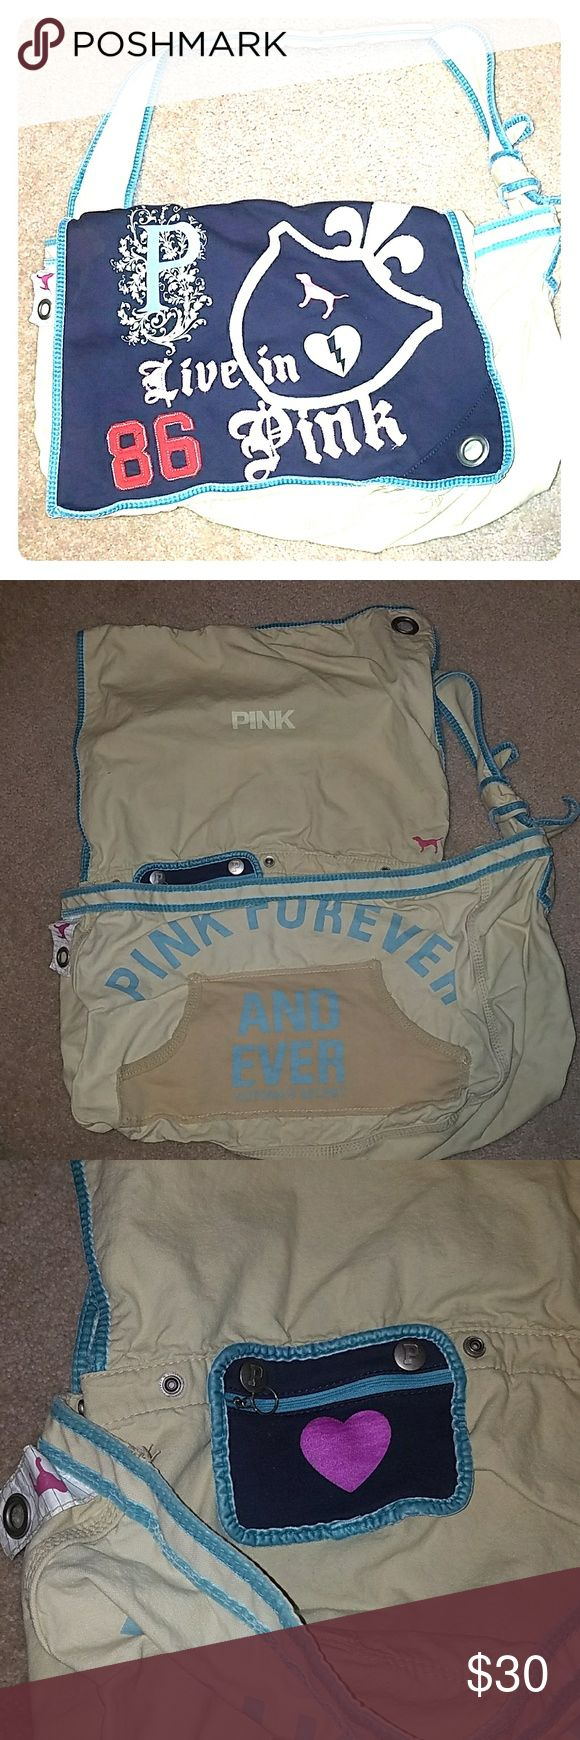 Extra Large Victoria's Secret PINK Messenger Bag Great condition for age. Very few thread pulls. It does have one stain that appears to be a curling iron burn.  Wears well. Feels good. This is an original PINK line bag.  Because of its size it is hard to find.  It's a heavy canvas with lots of pockets. 🖤 PINK Bags Crossbody Bags